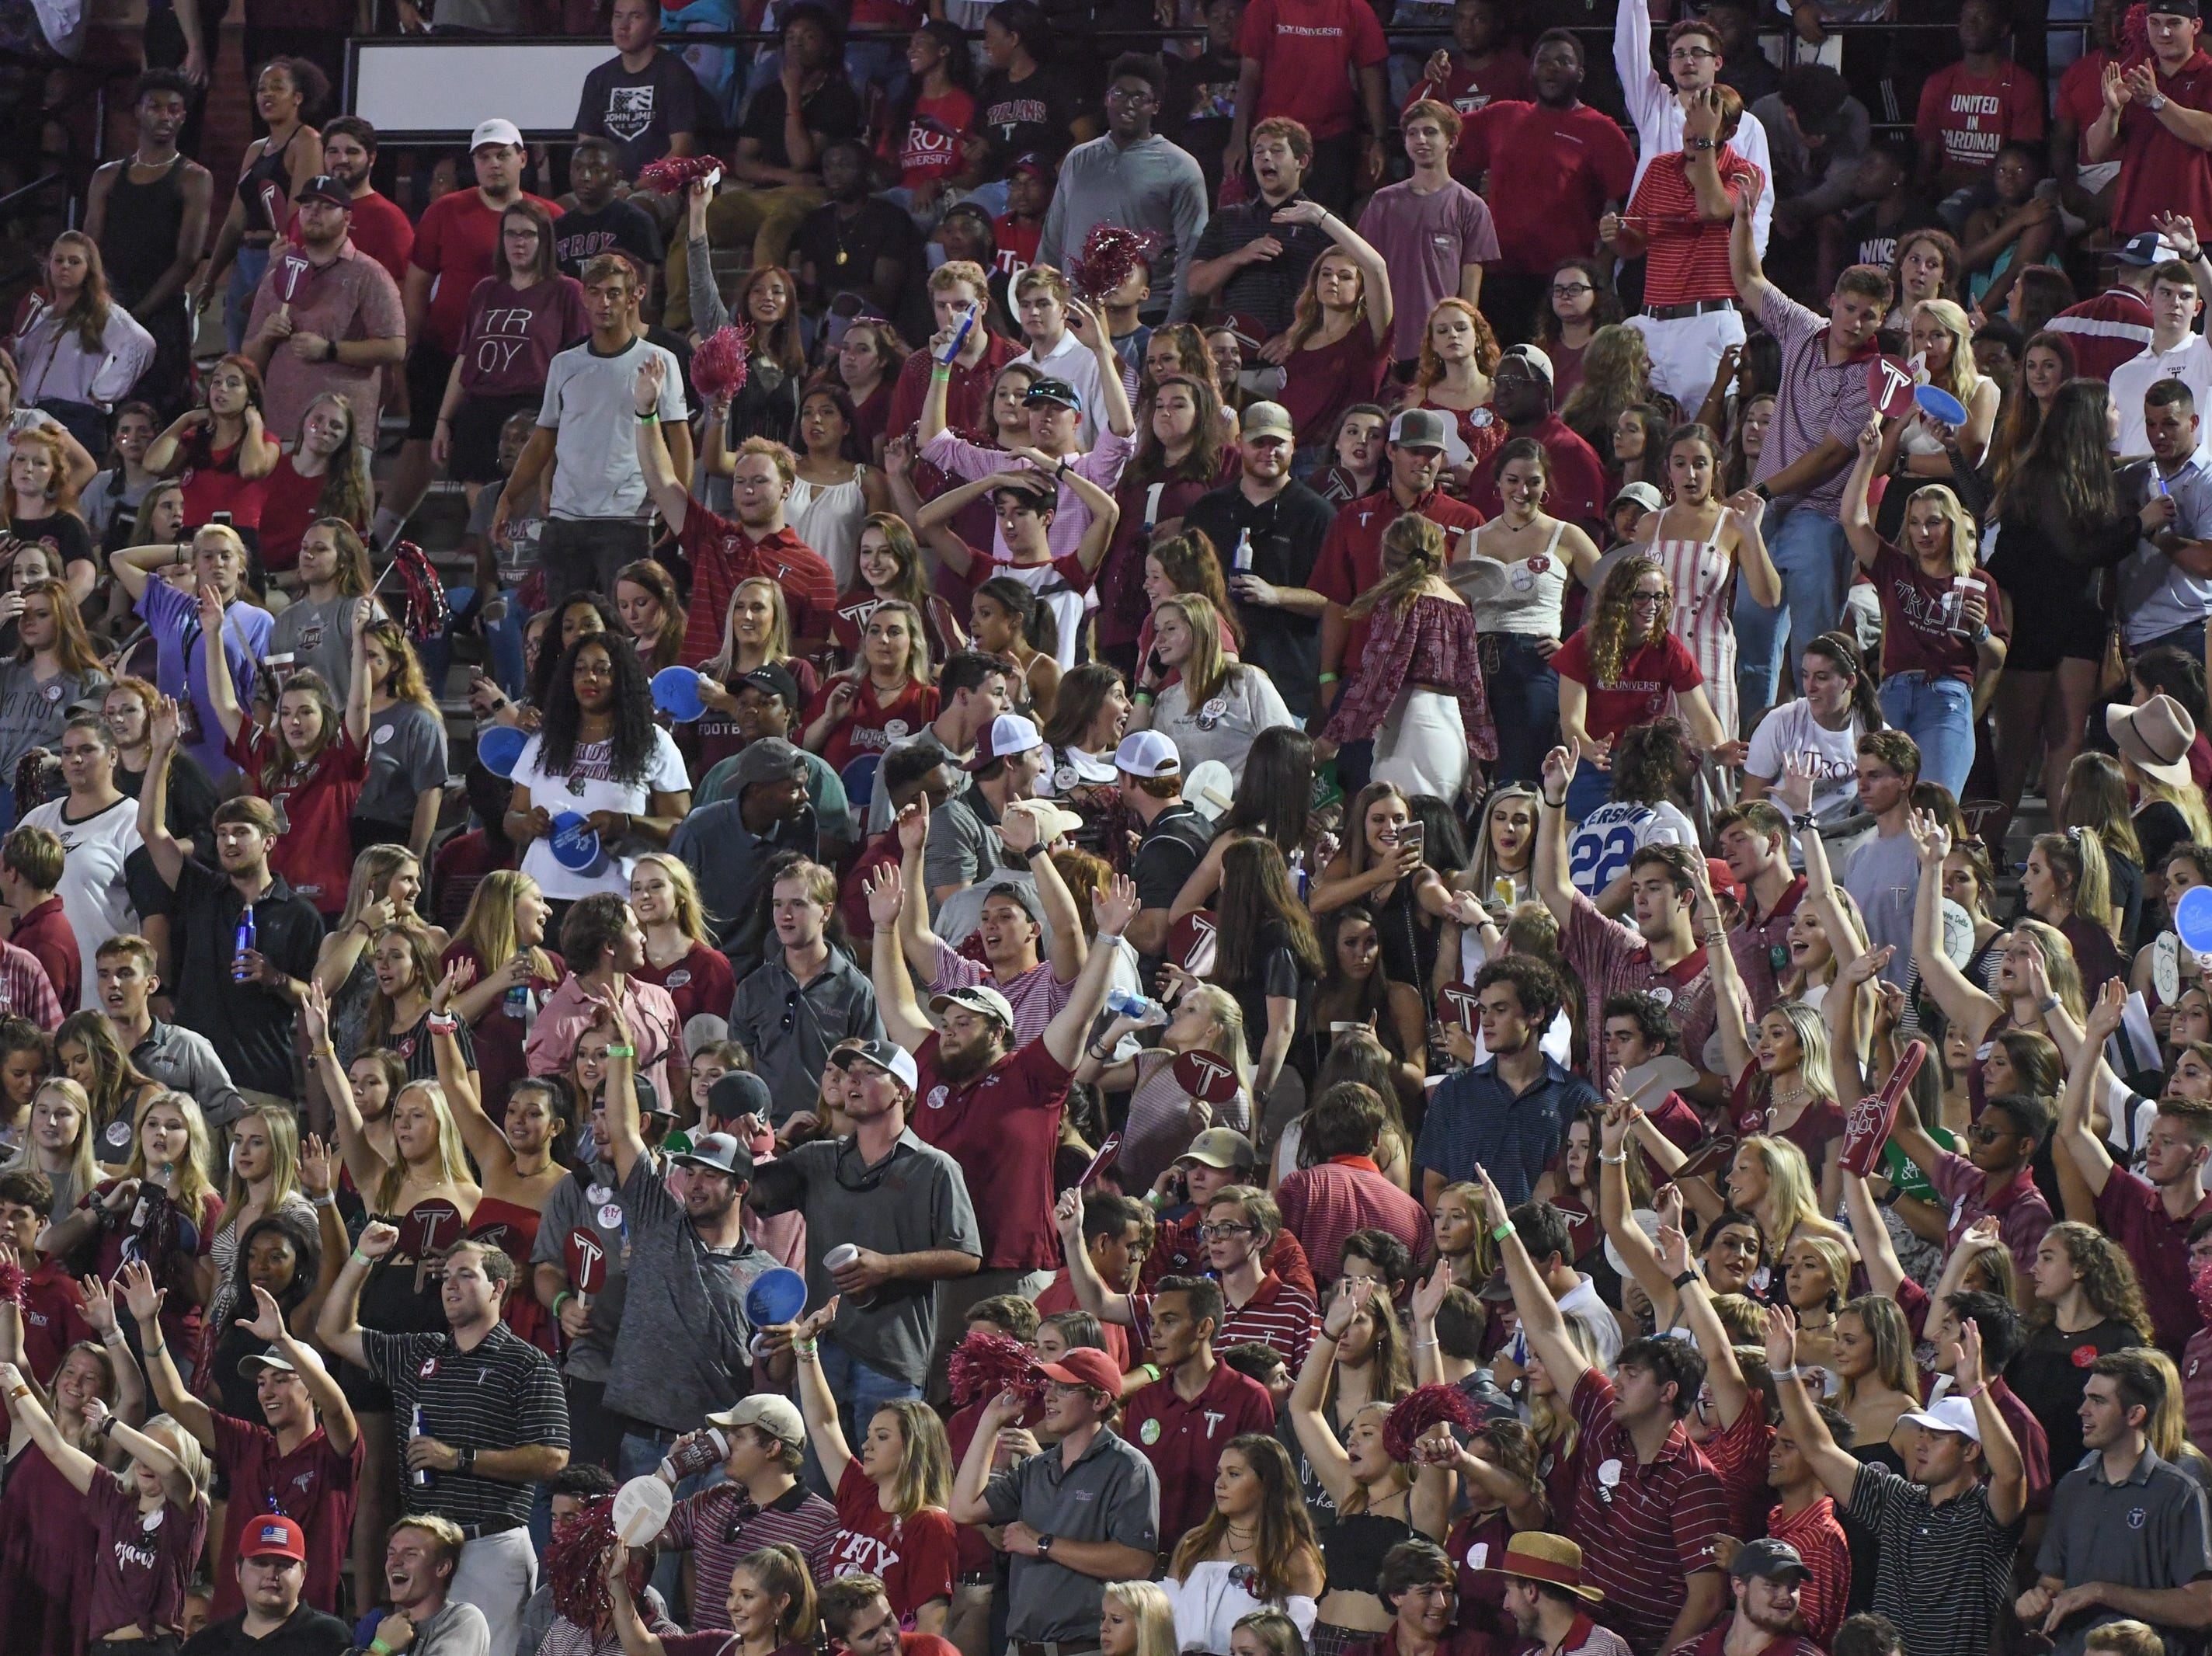 The Troy student section celebrates a Troy touchdown against Georgia State at Veteran's Memorial Stadium in Troy, Ala., on Thursday, Oct. 4, 2018. (Chip Dillard/Special to the Montgomery Advertiser)